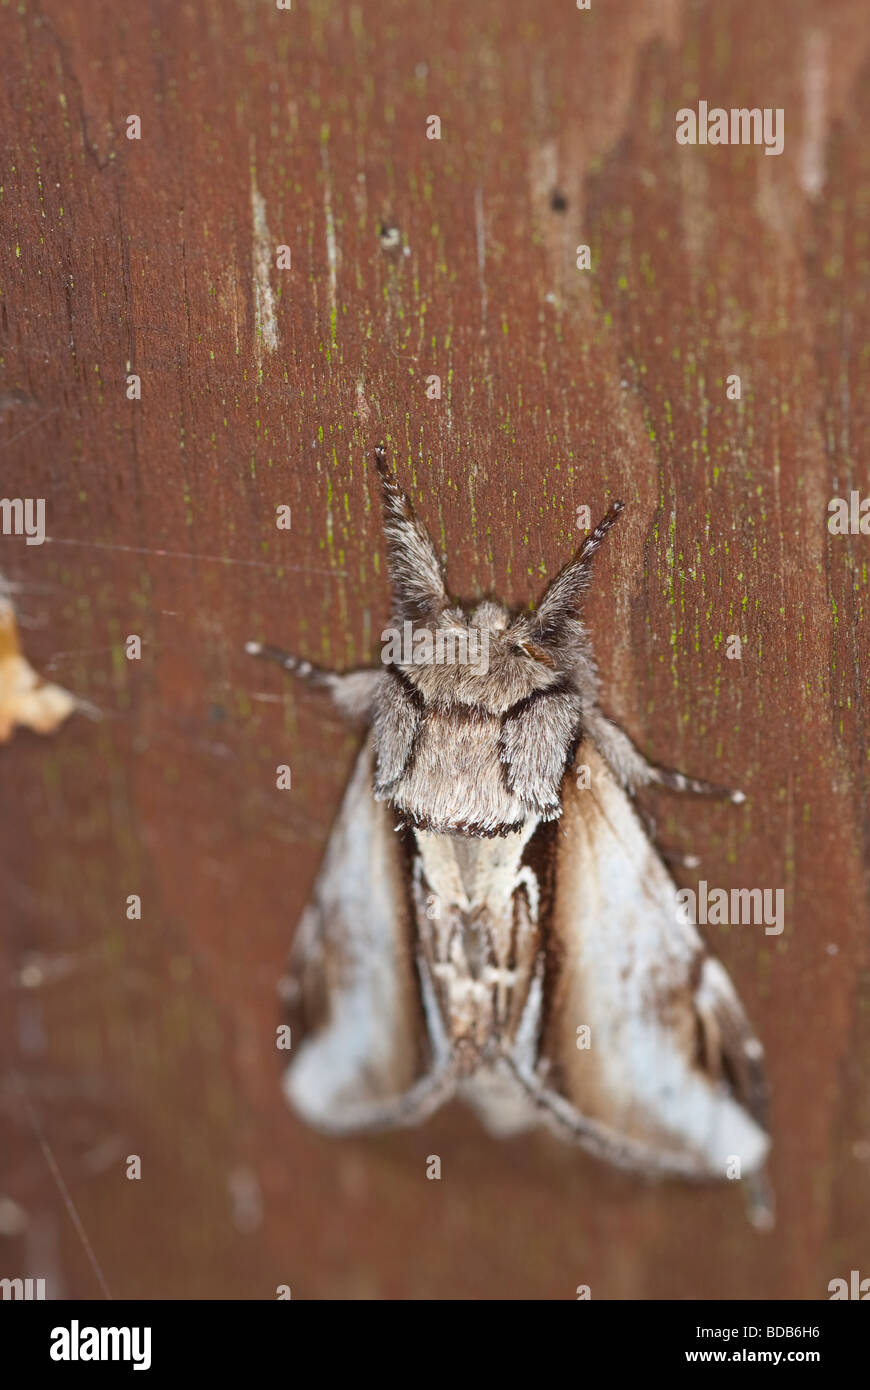 Swallow prominent moth - Stock Image